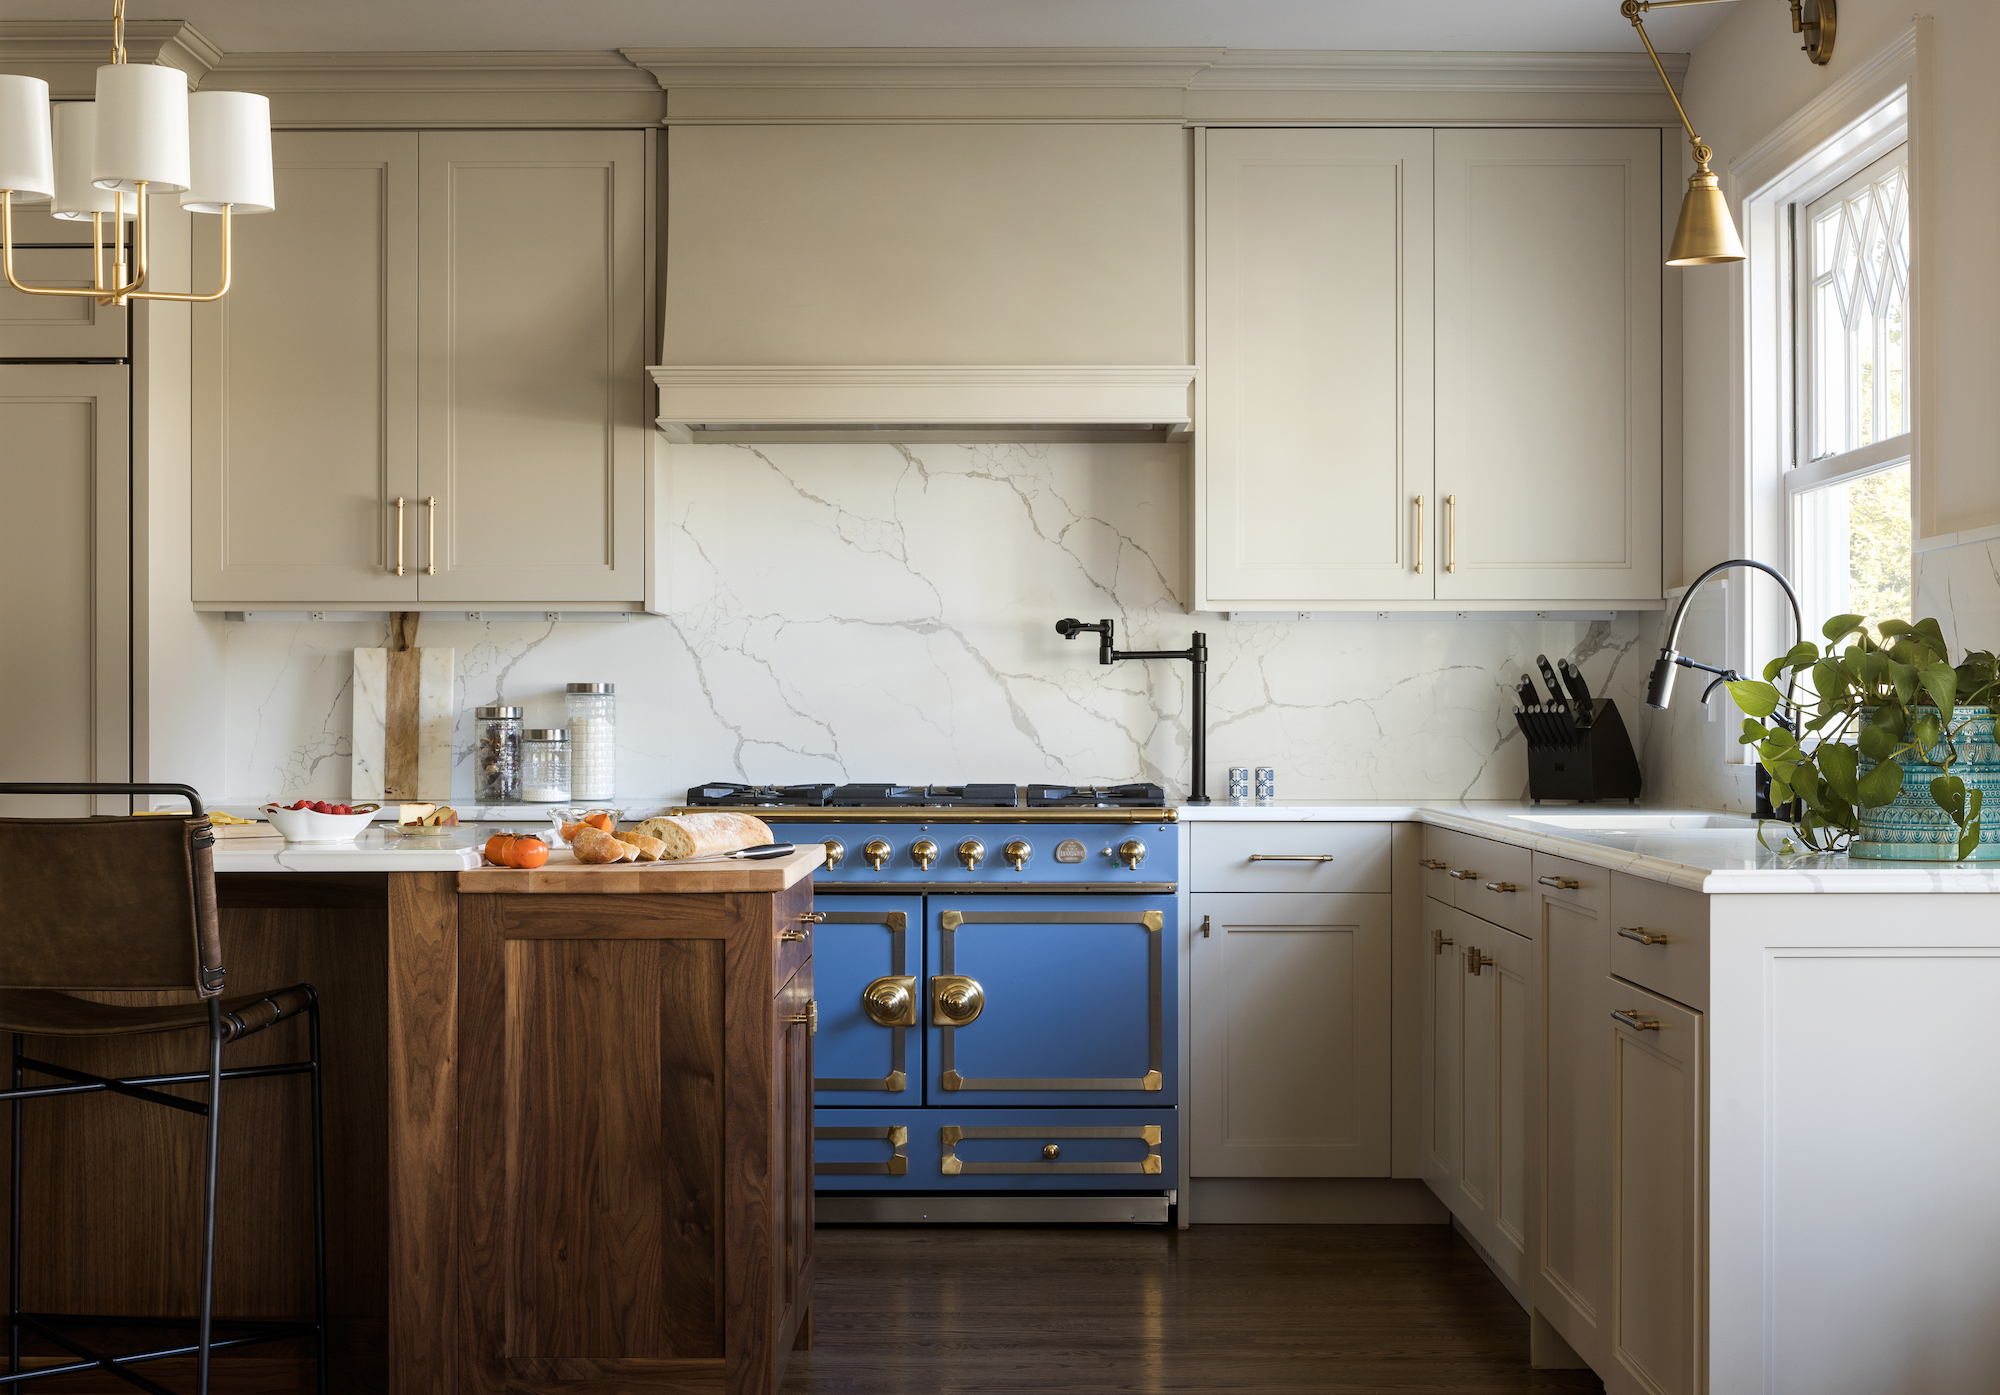 Inset Transitional Shaker Style Cabinet Doors, beige in kitchen